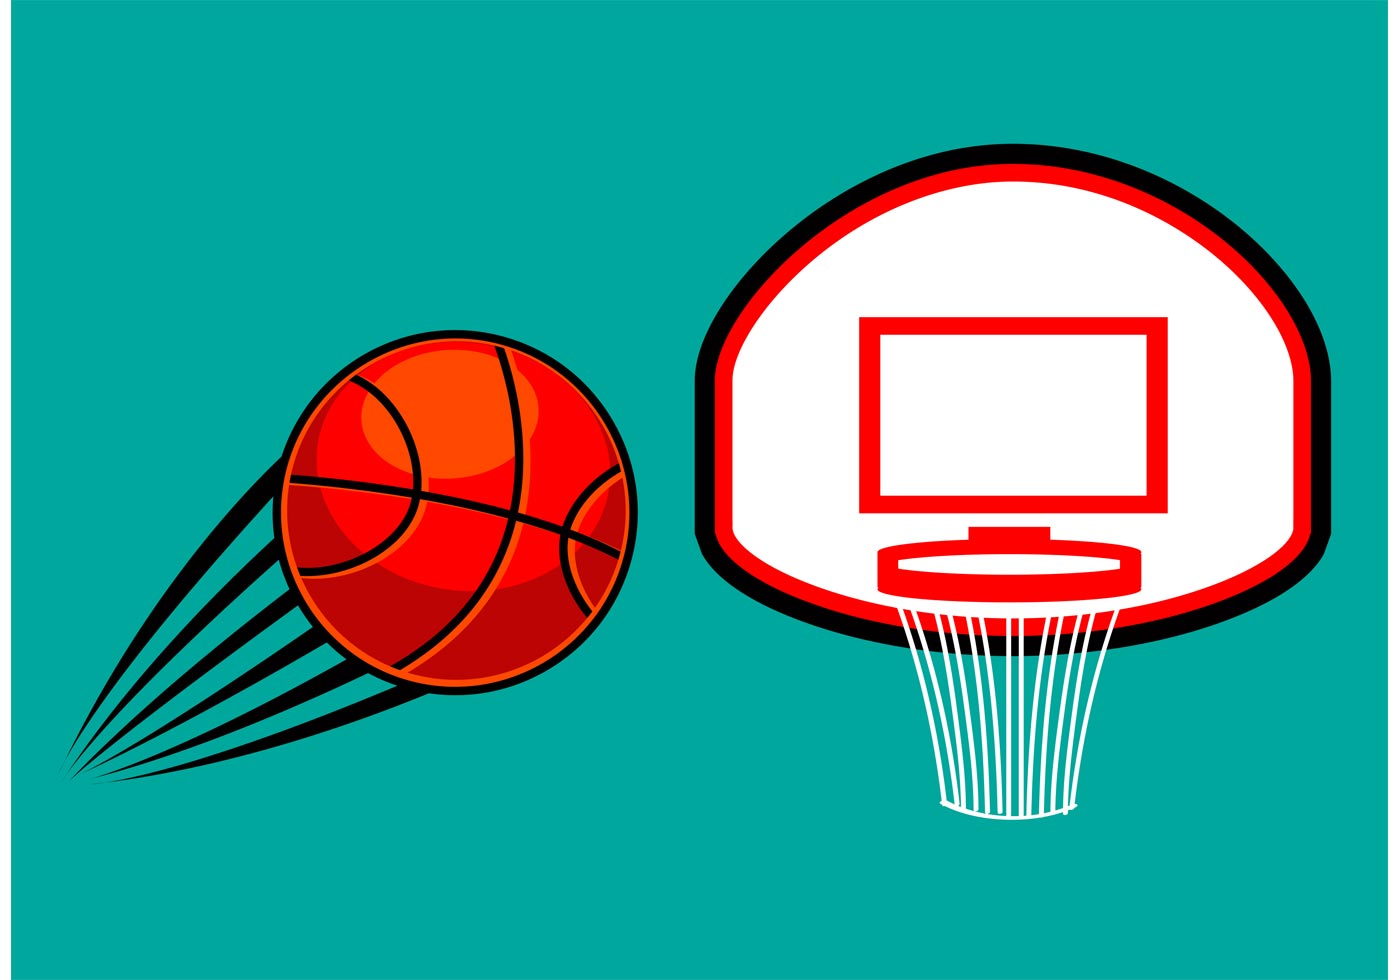 Free basketball vector download free vector art stock graphics images for Free basketball vector